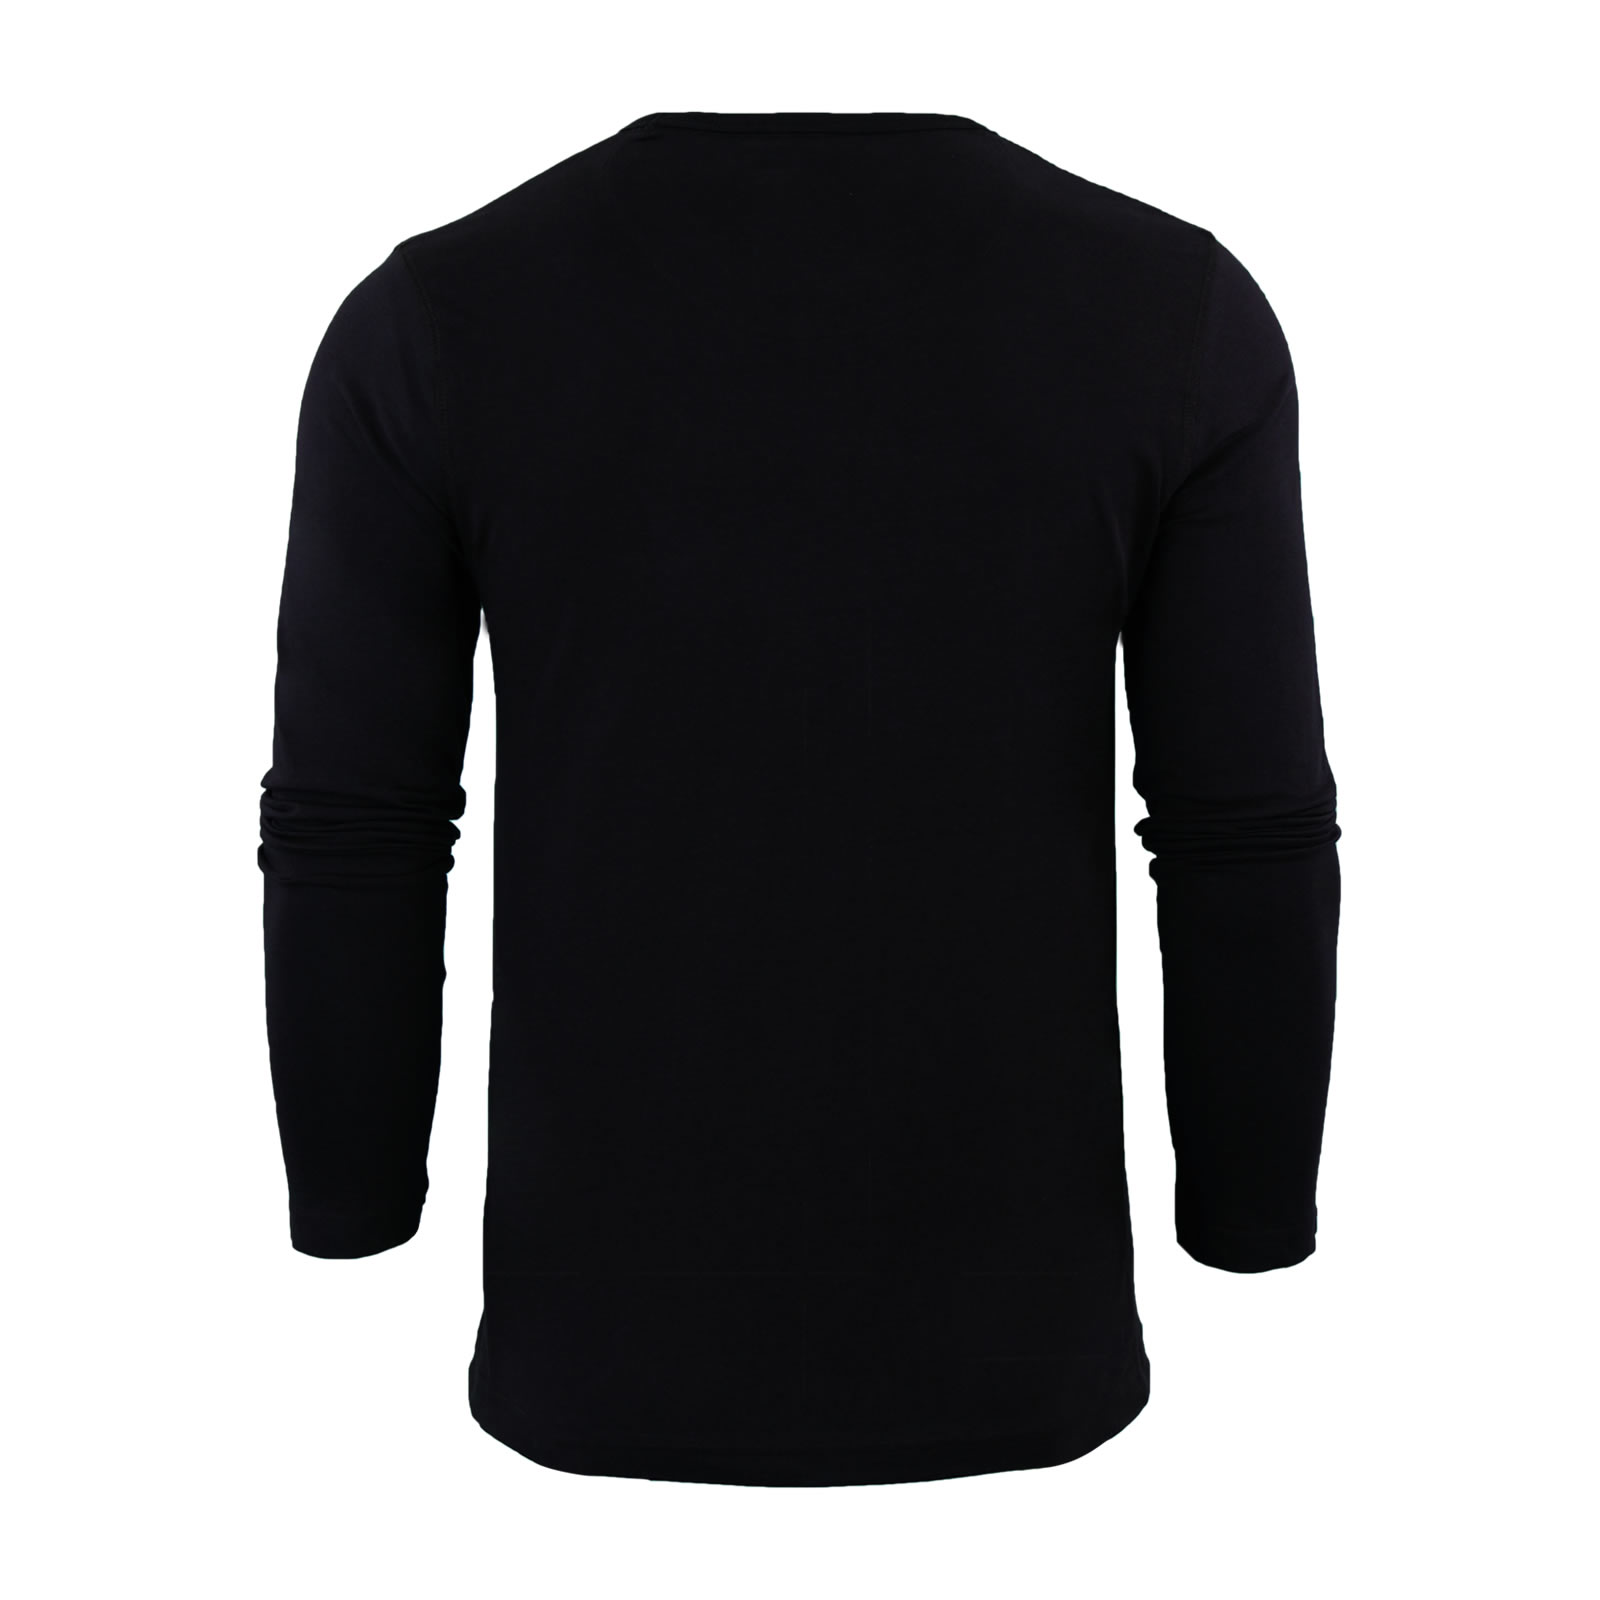 8599b1c177bf6 Mens T-Shirt by Brave Soul Prague Cotton Long Sleeved Crew Neck ...